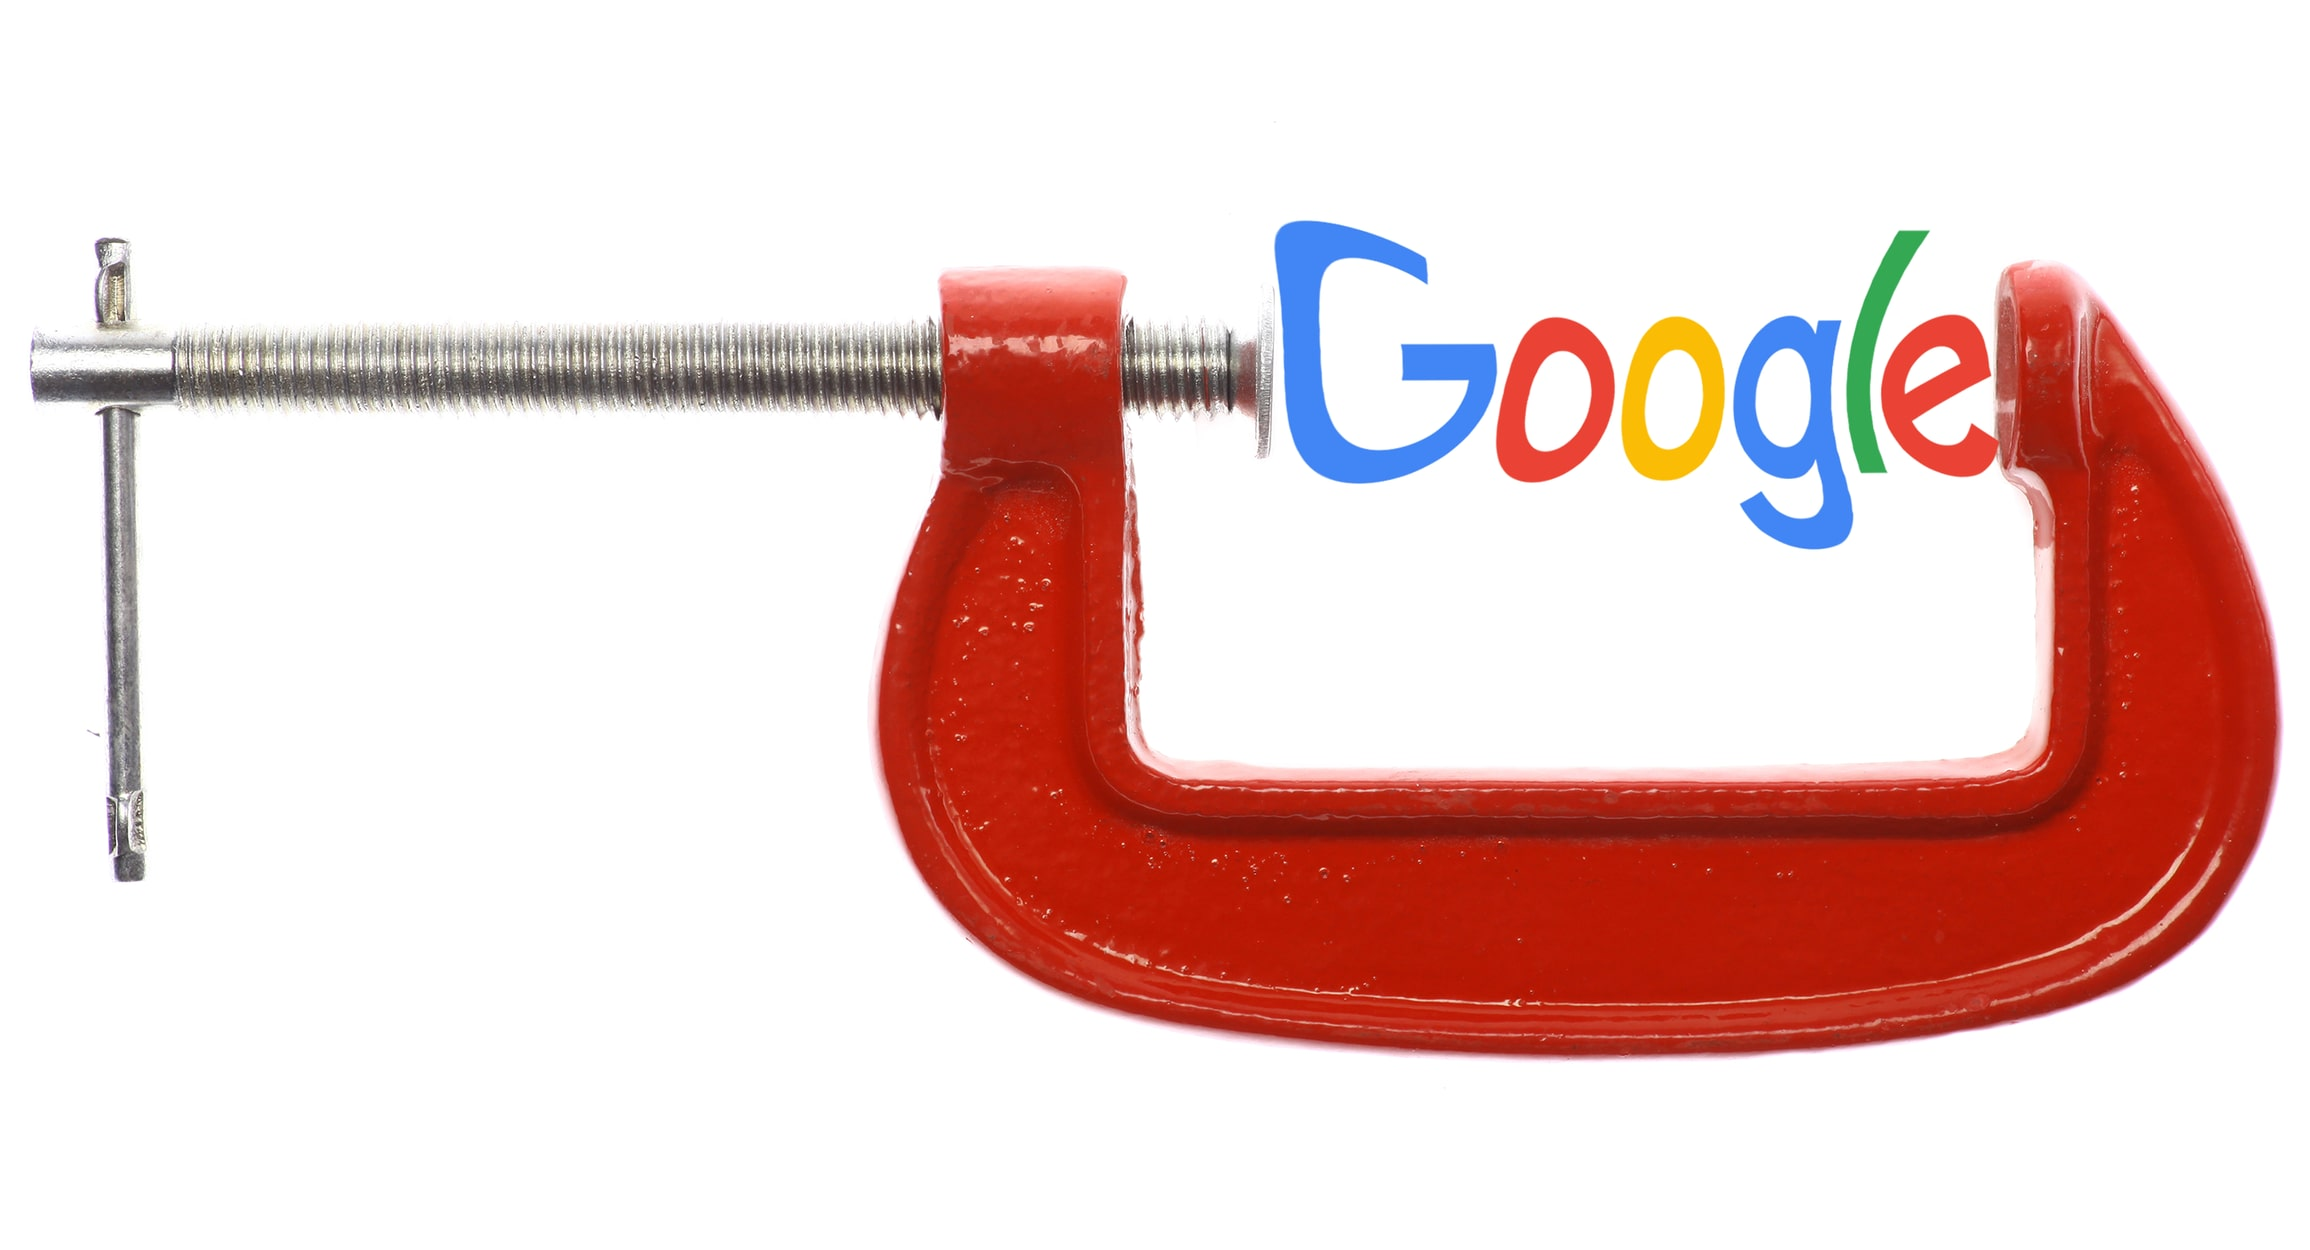 Google's new PNG logo might not be as small as claimed.